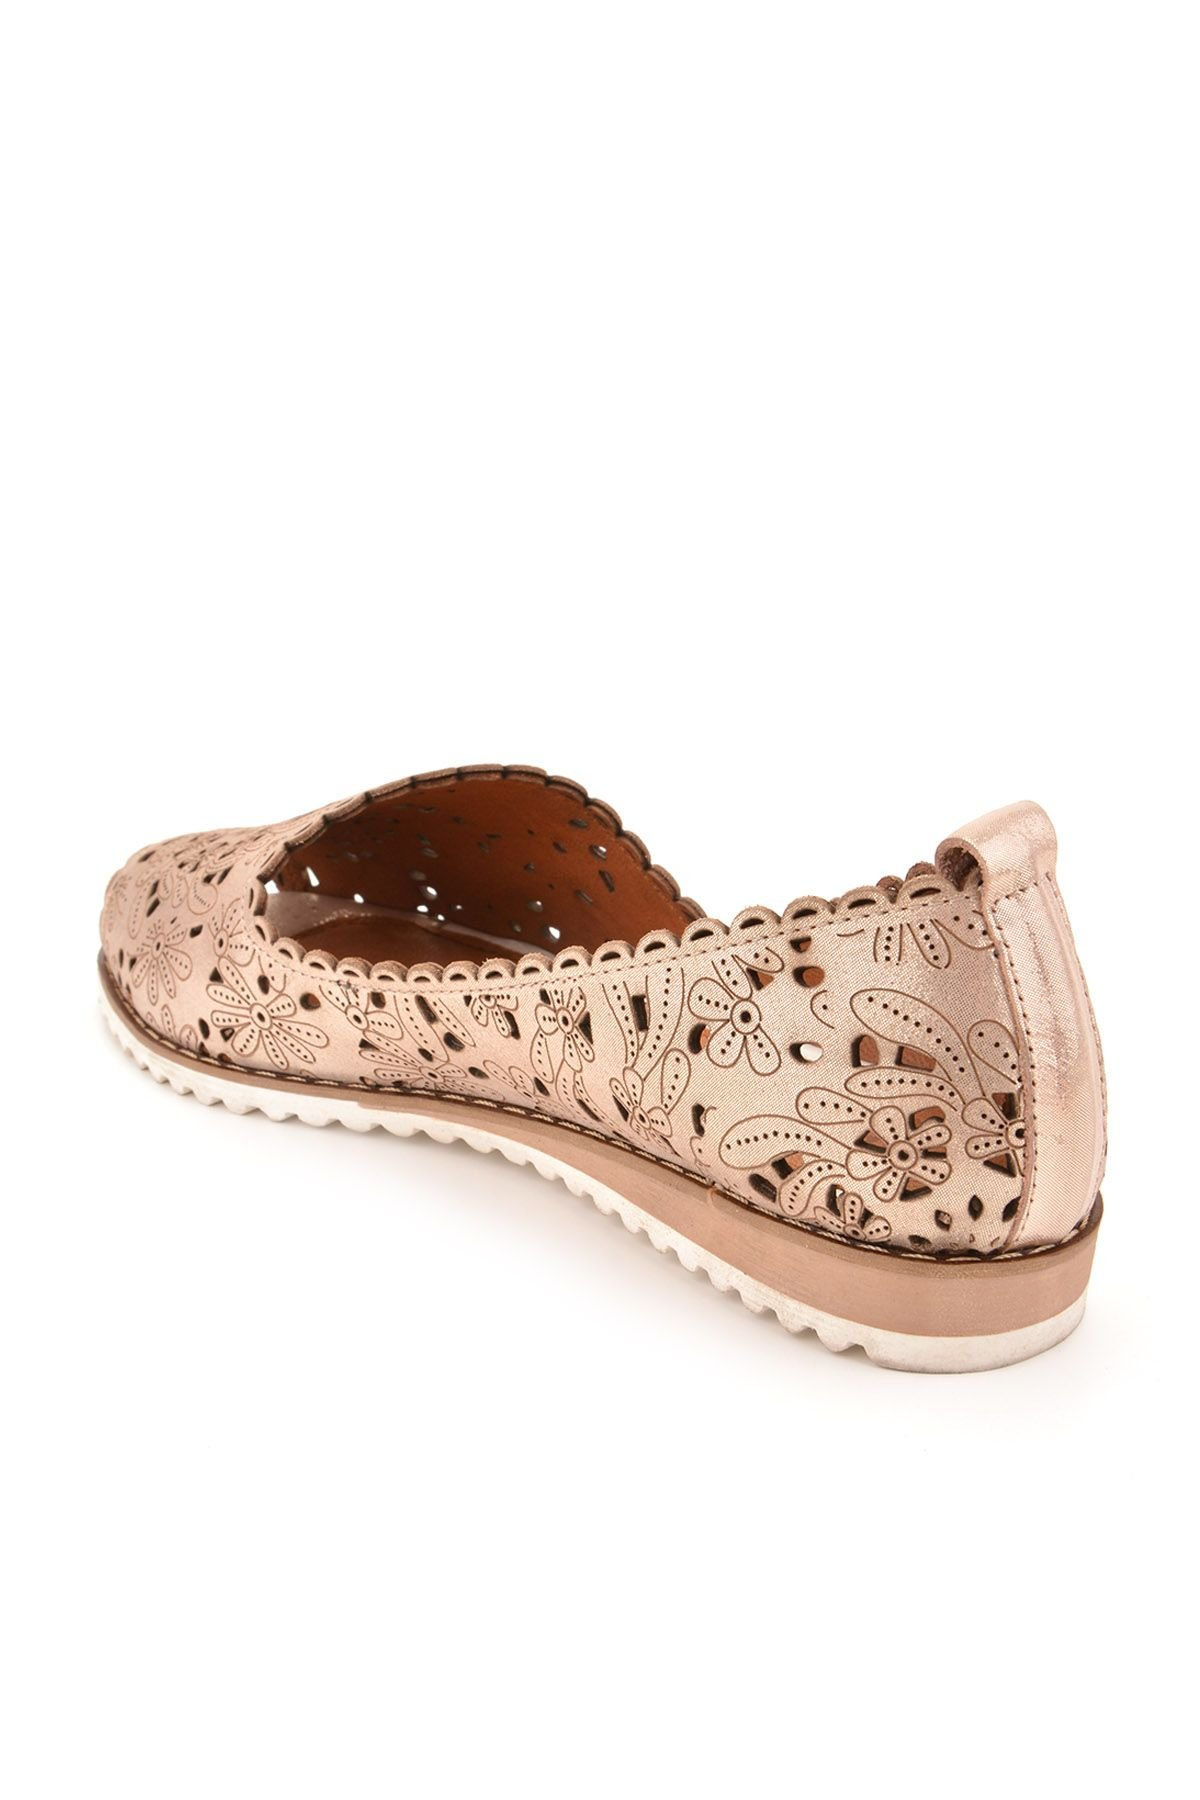 Pegia Open Fronted Women Shoes From Genuine Leather Bronze